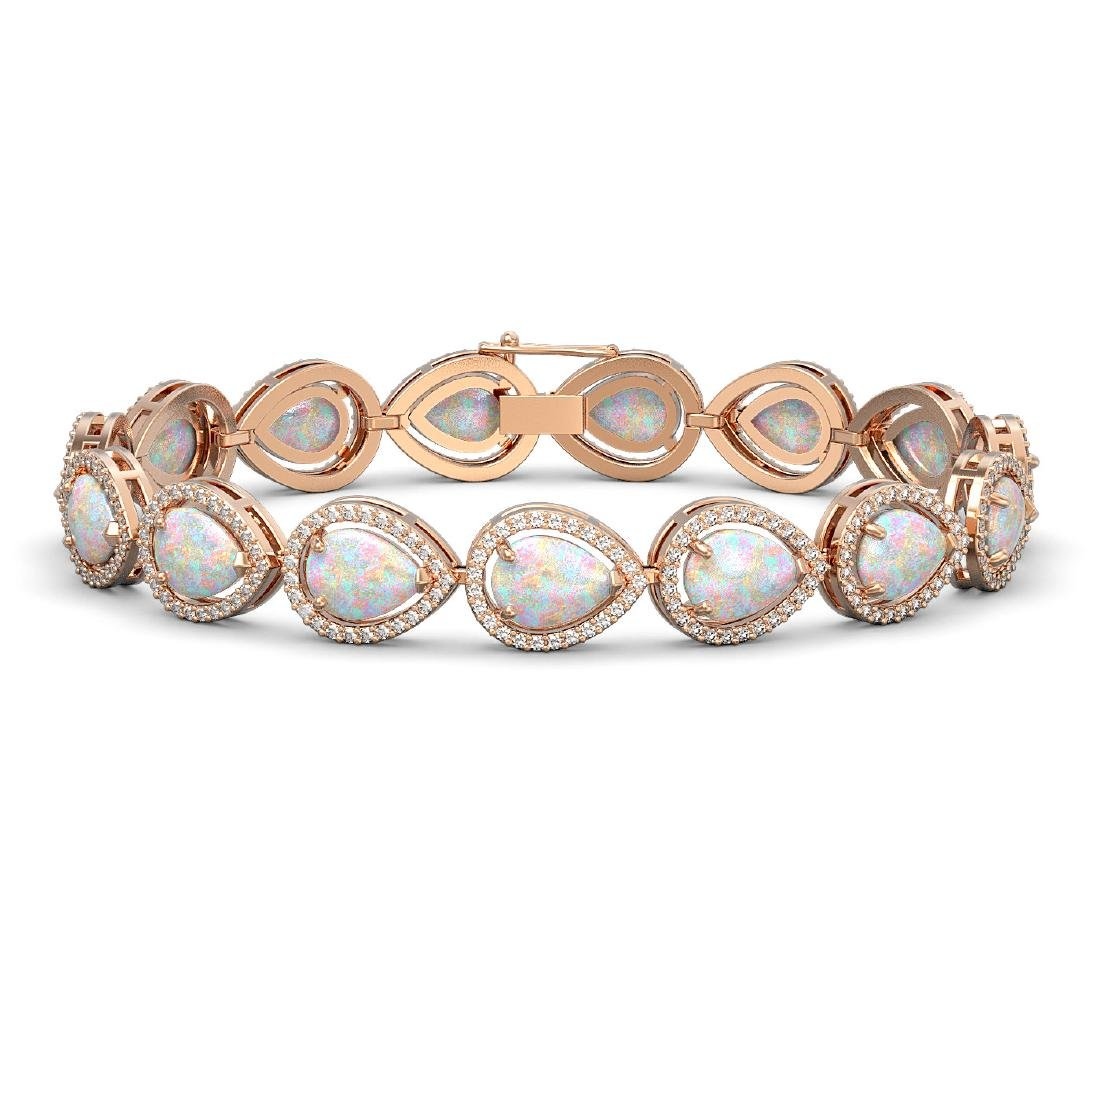 17.15 CTW Opal & Diamond Halo Bracelet 10K Rose Gold